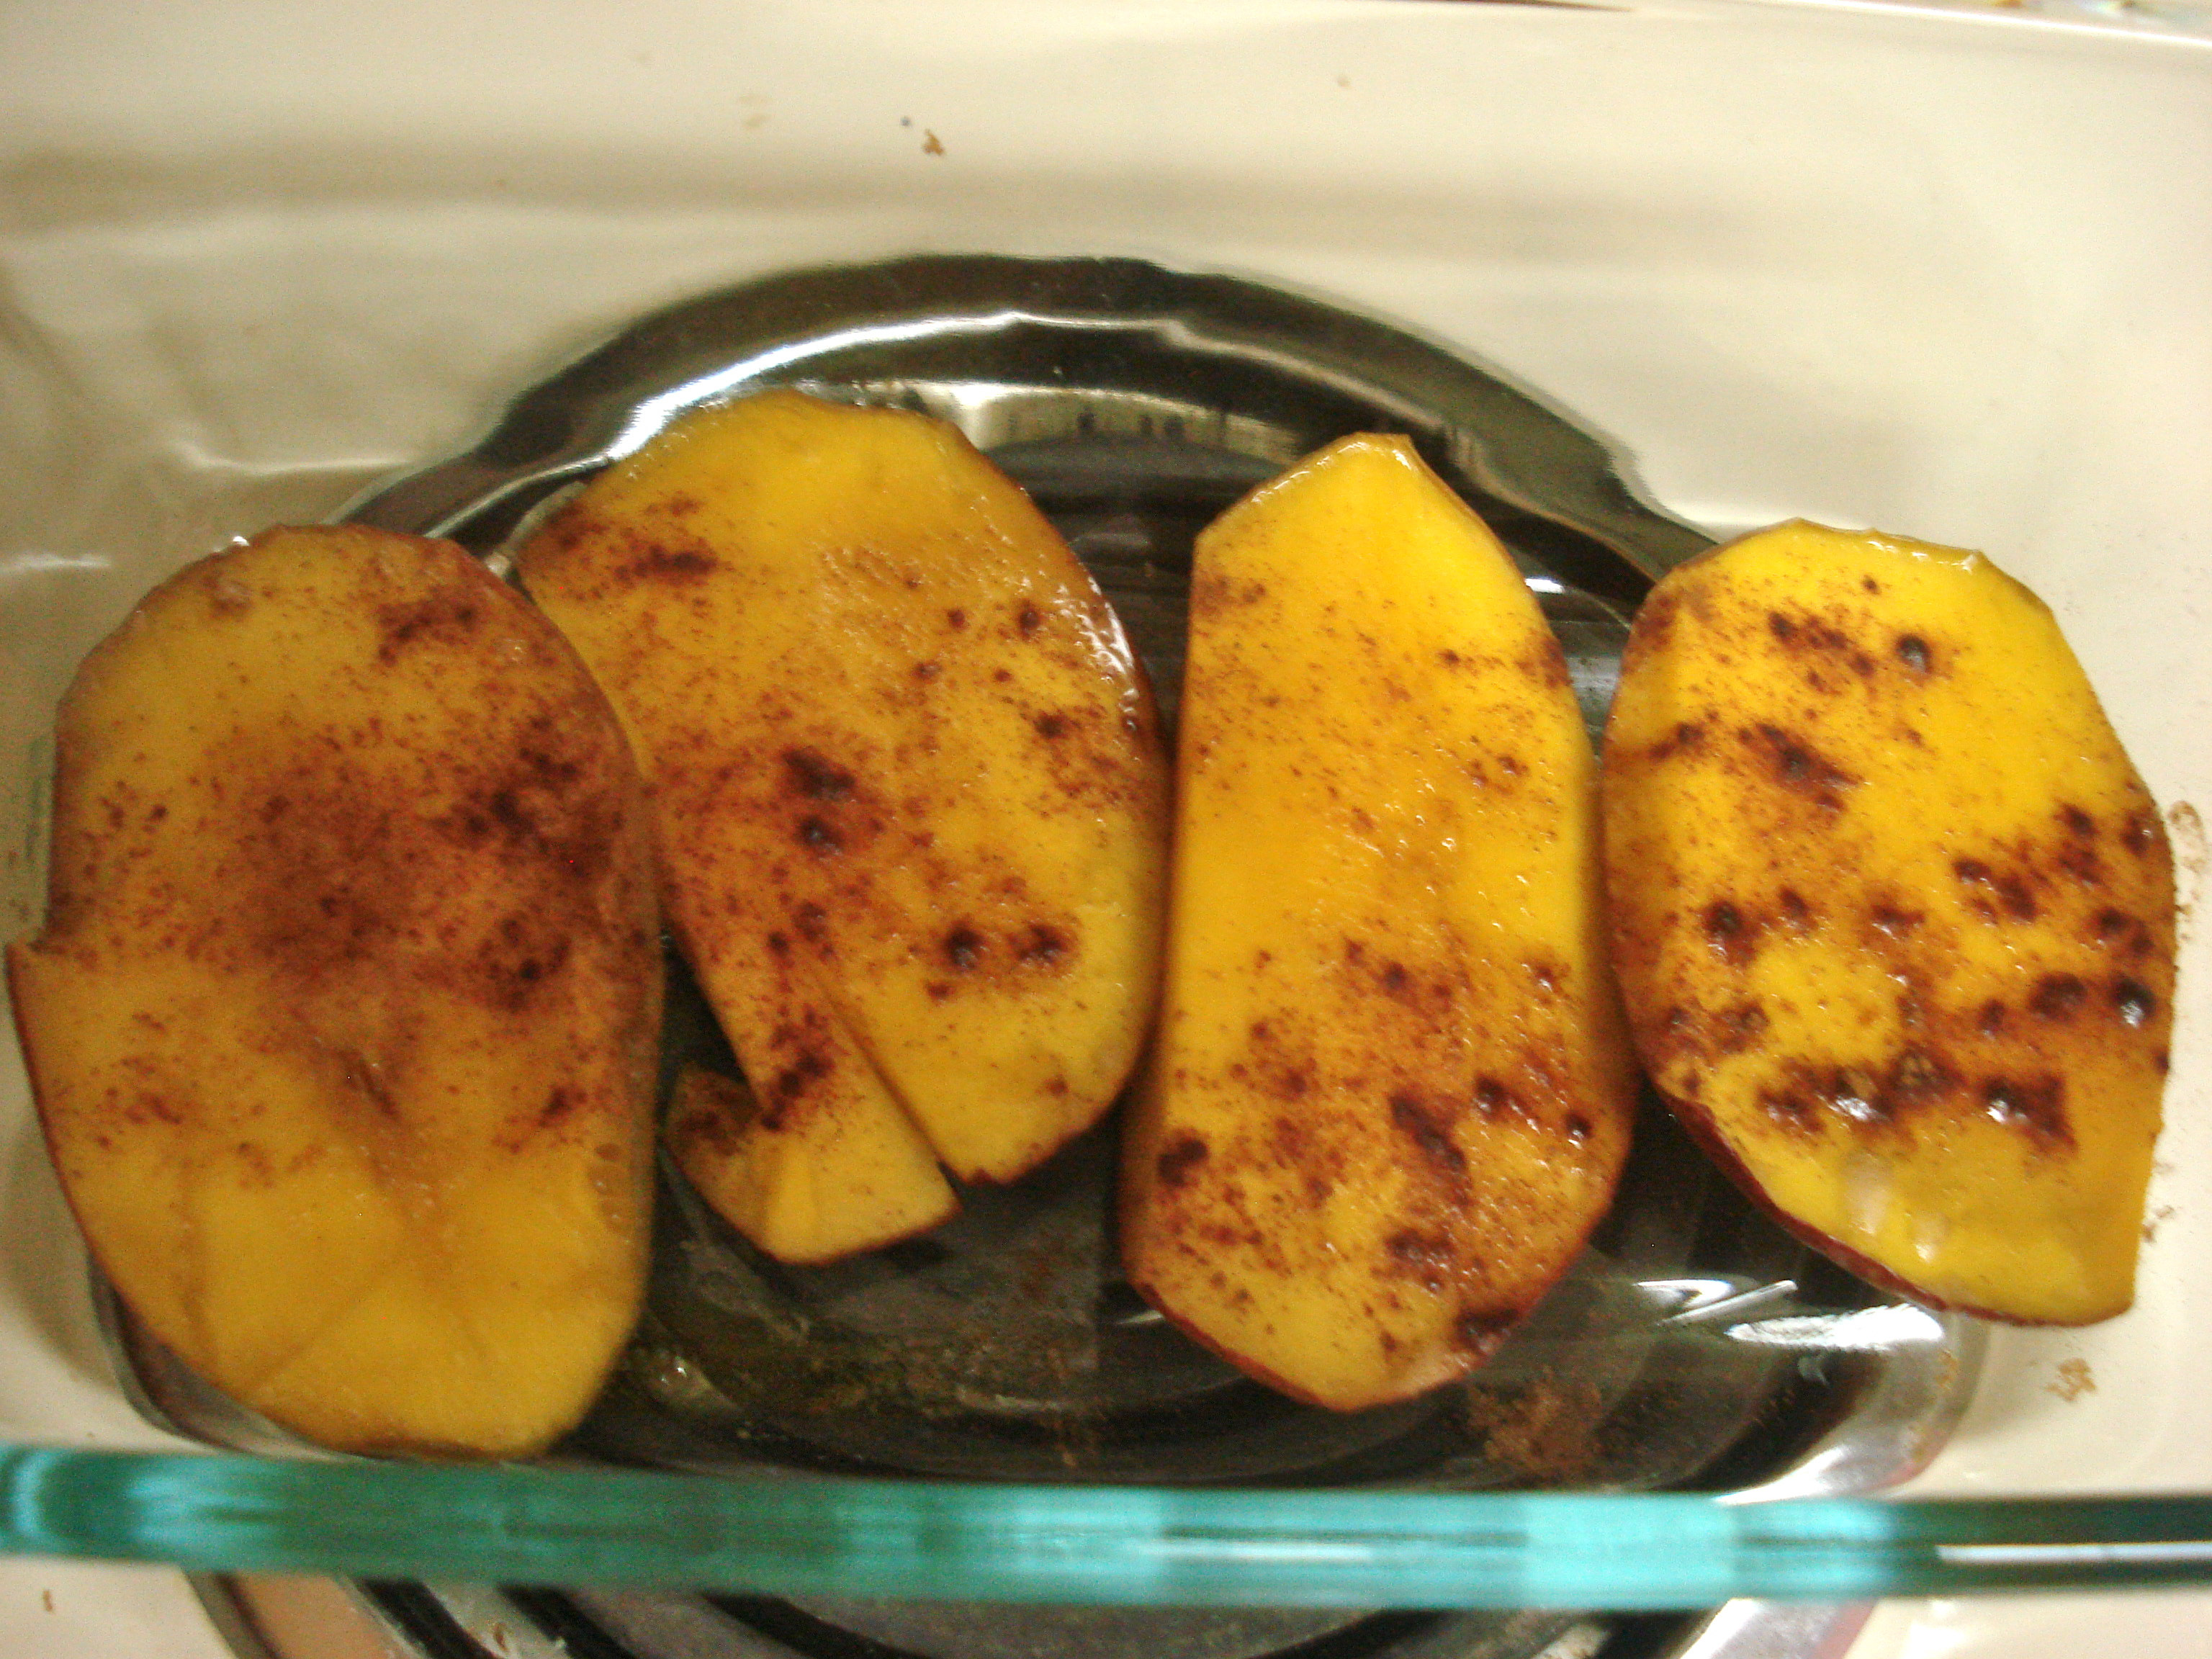 baked mango with brown sugar & cinnamon | Day-By-Day Masterpiece